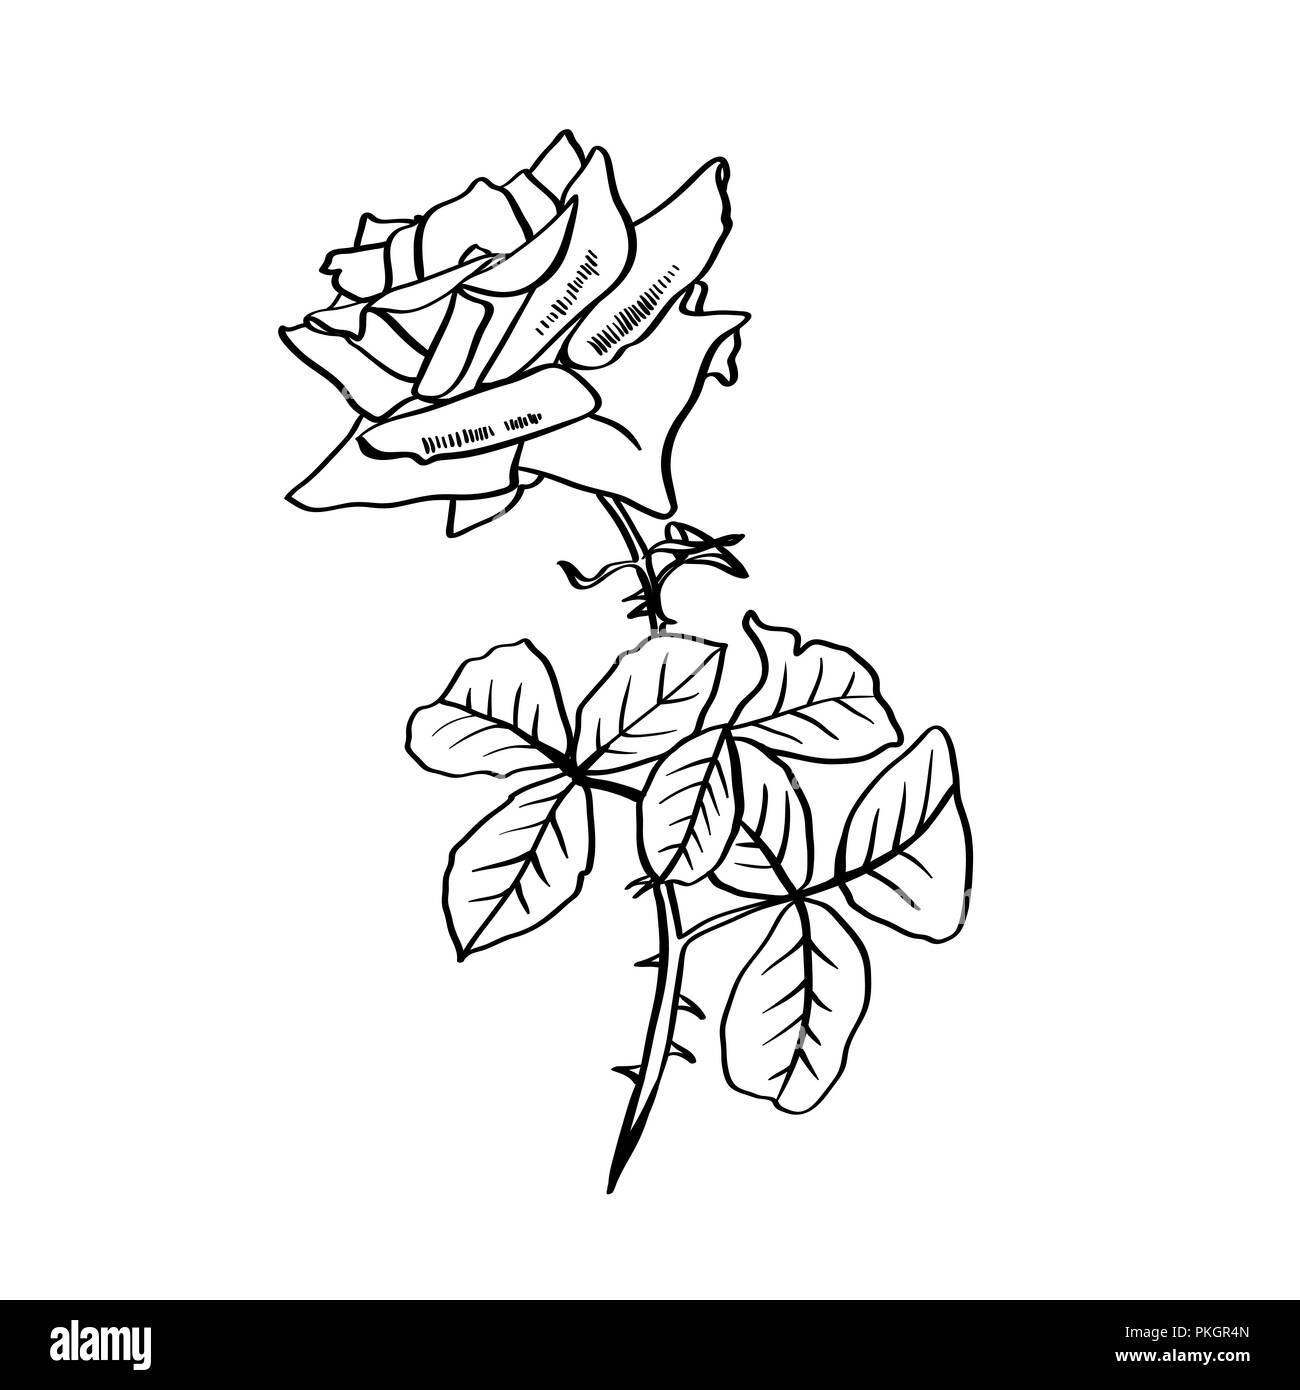 Rose pencil drawing garden flower sketch postcard logo cover tattoo floral design element vector isolated on white background